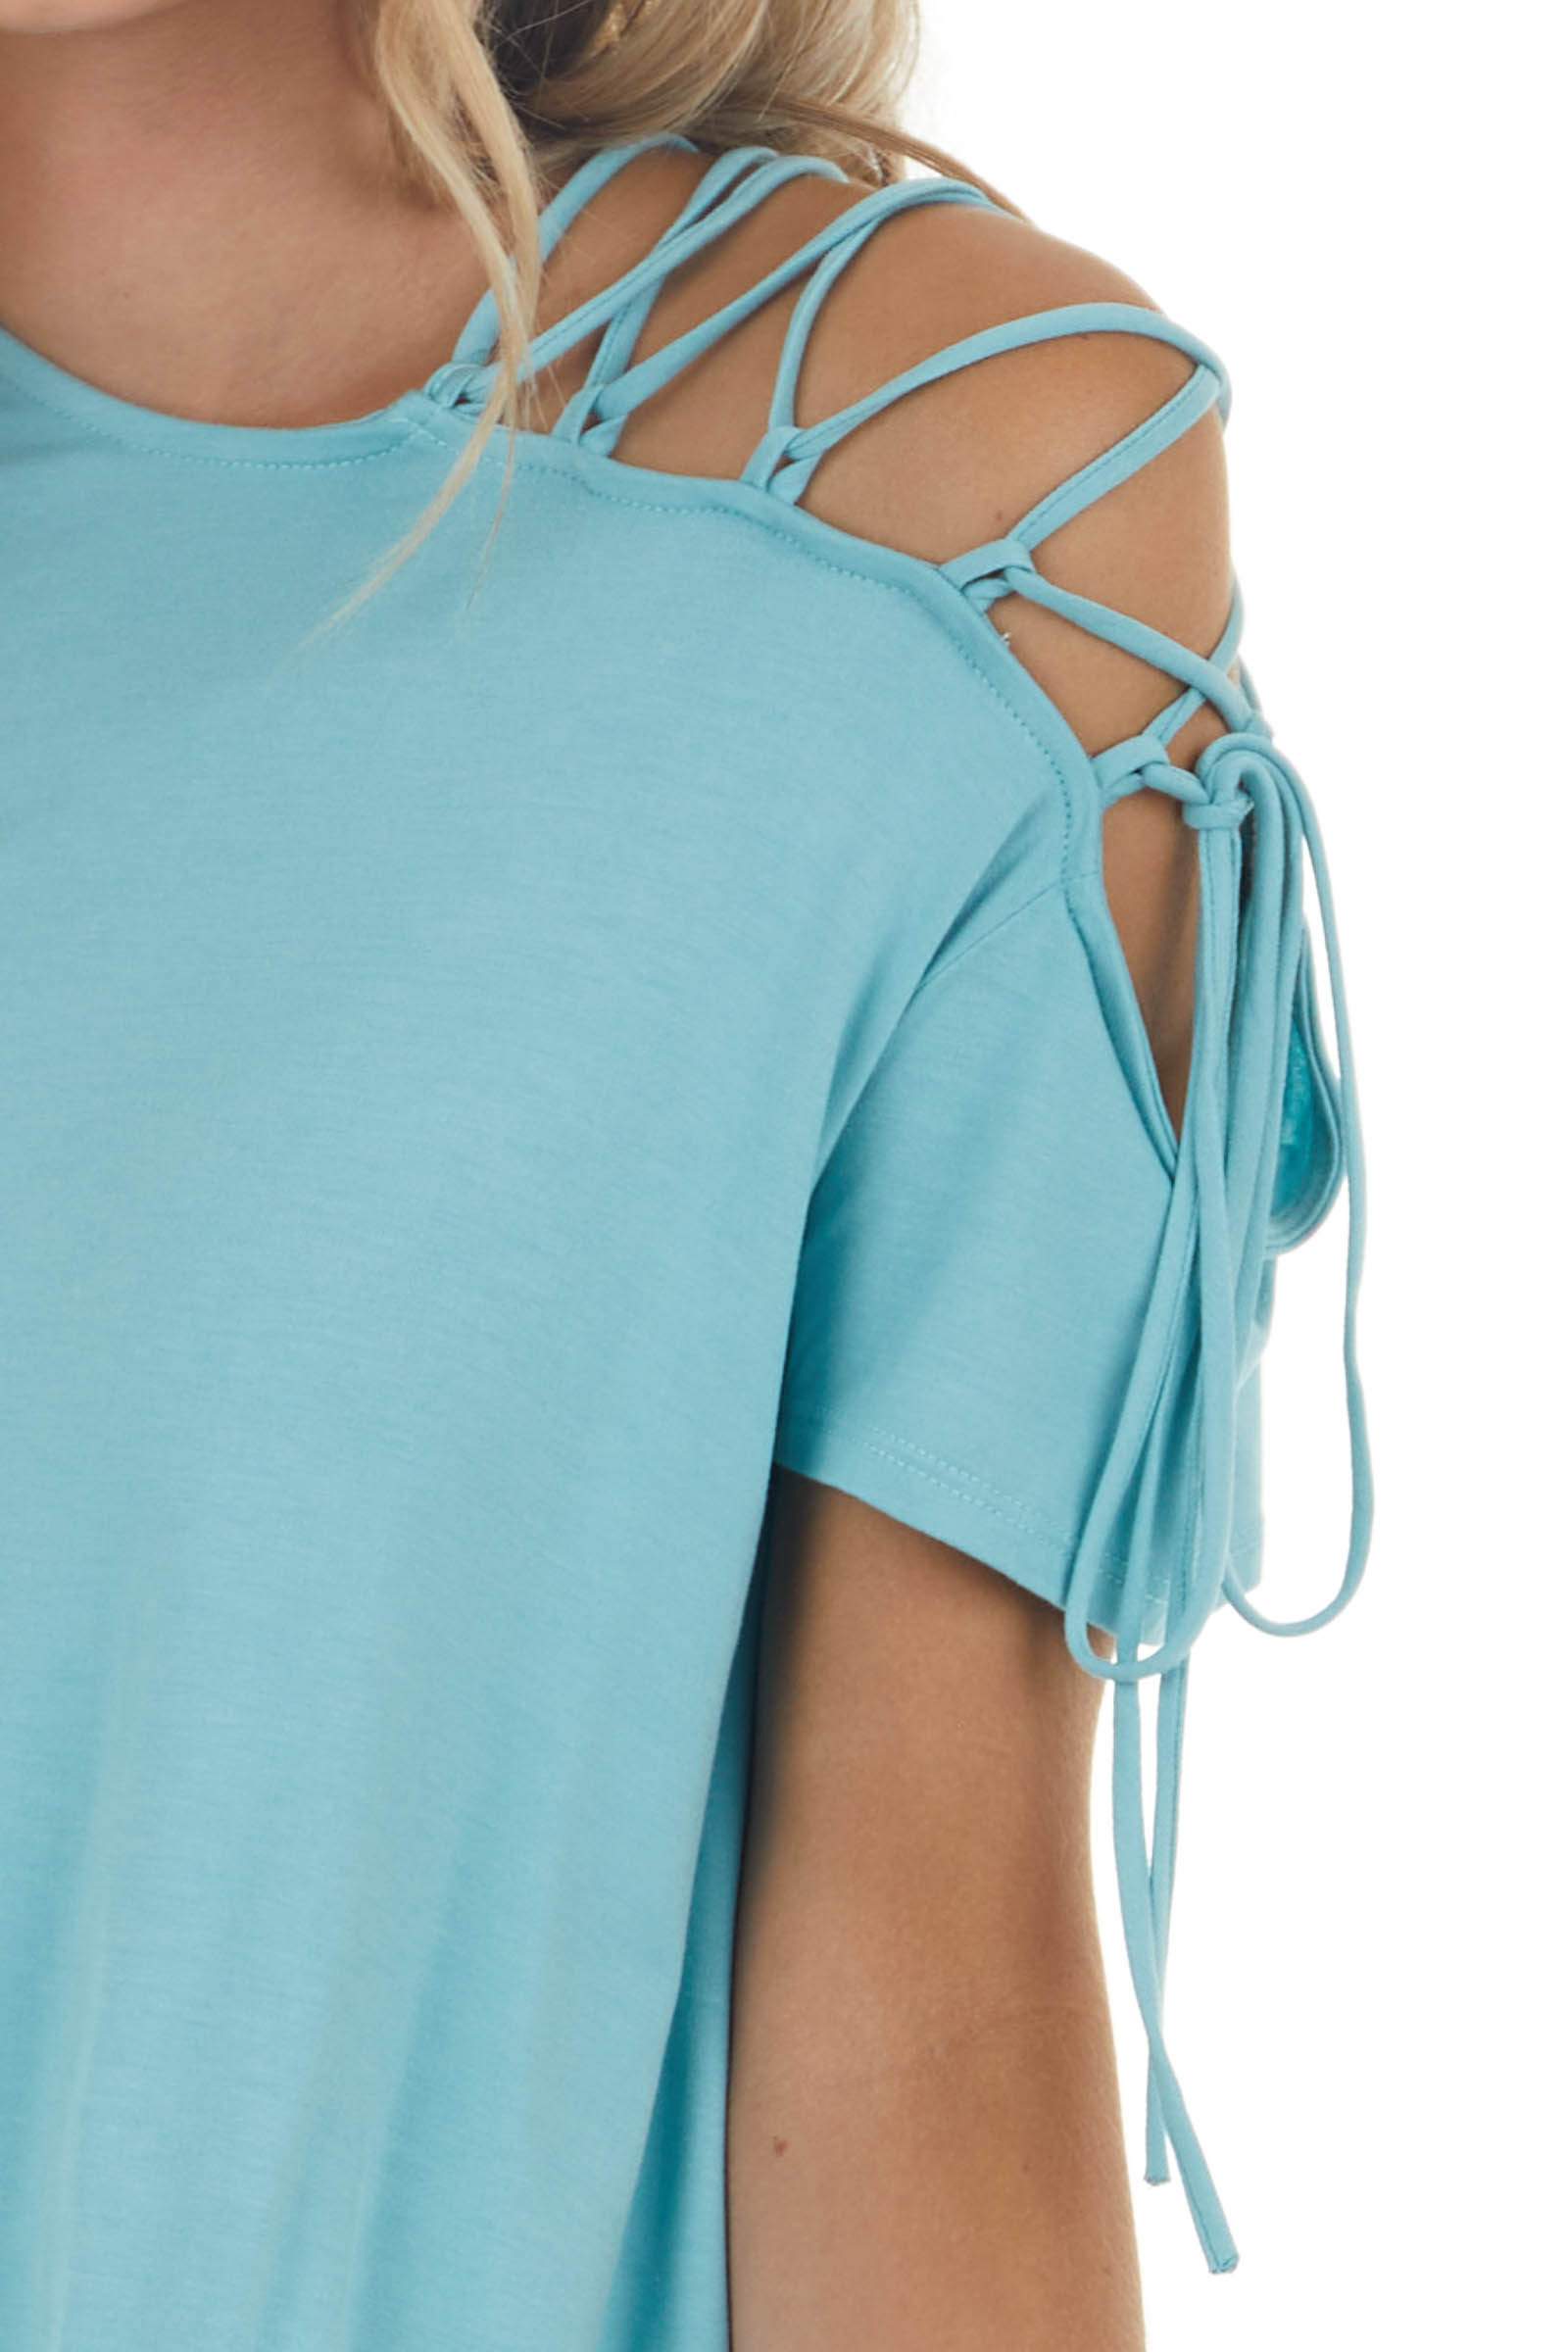 Teal Short Sleeve Knit Top with Lace Up Cold Shoulder Detail